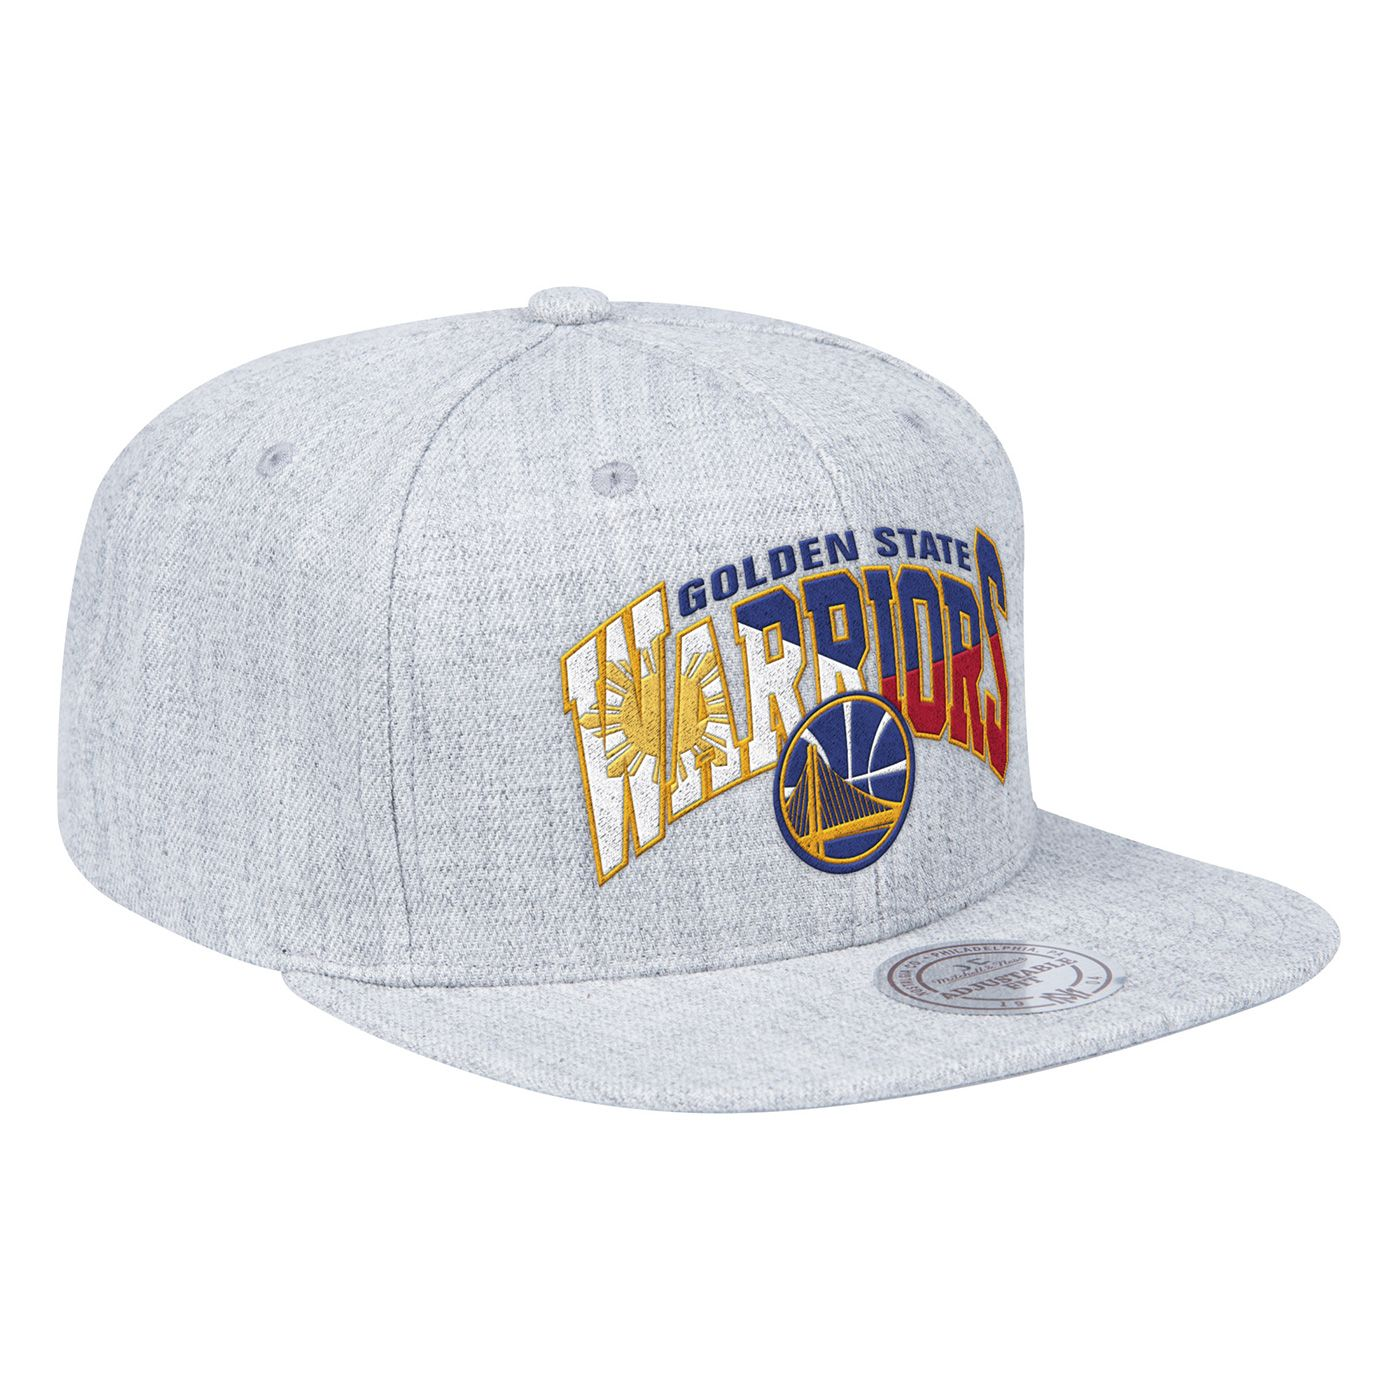 newest 30ef6 17350 Golden State Warriors Mitchell   Ness Filipino Heritage Hardwood Classics  Flat Brim Snapback Hat - Grey - Golden State Warriors - Official Online  Store